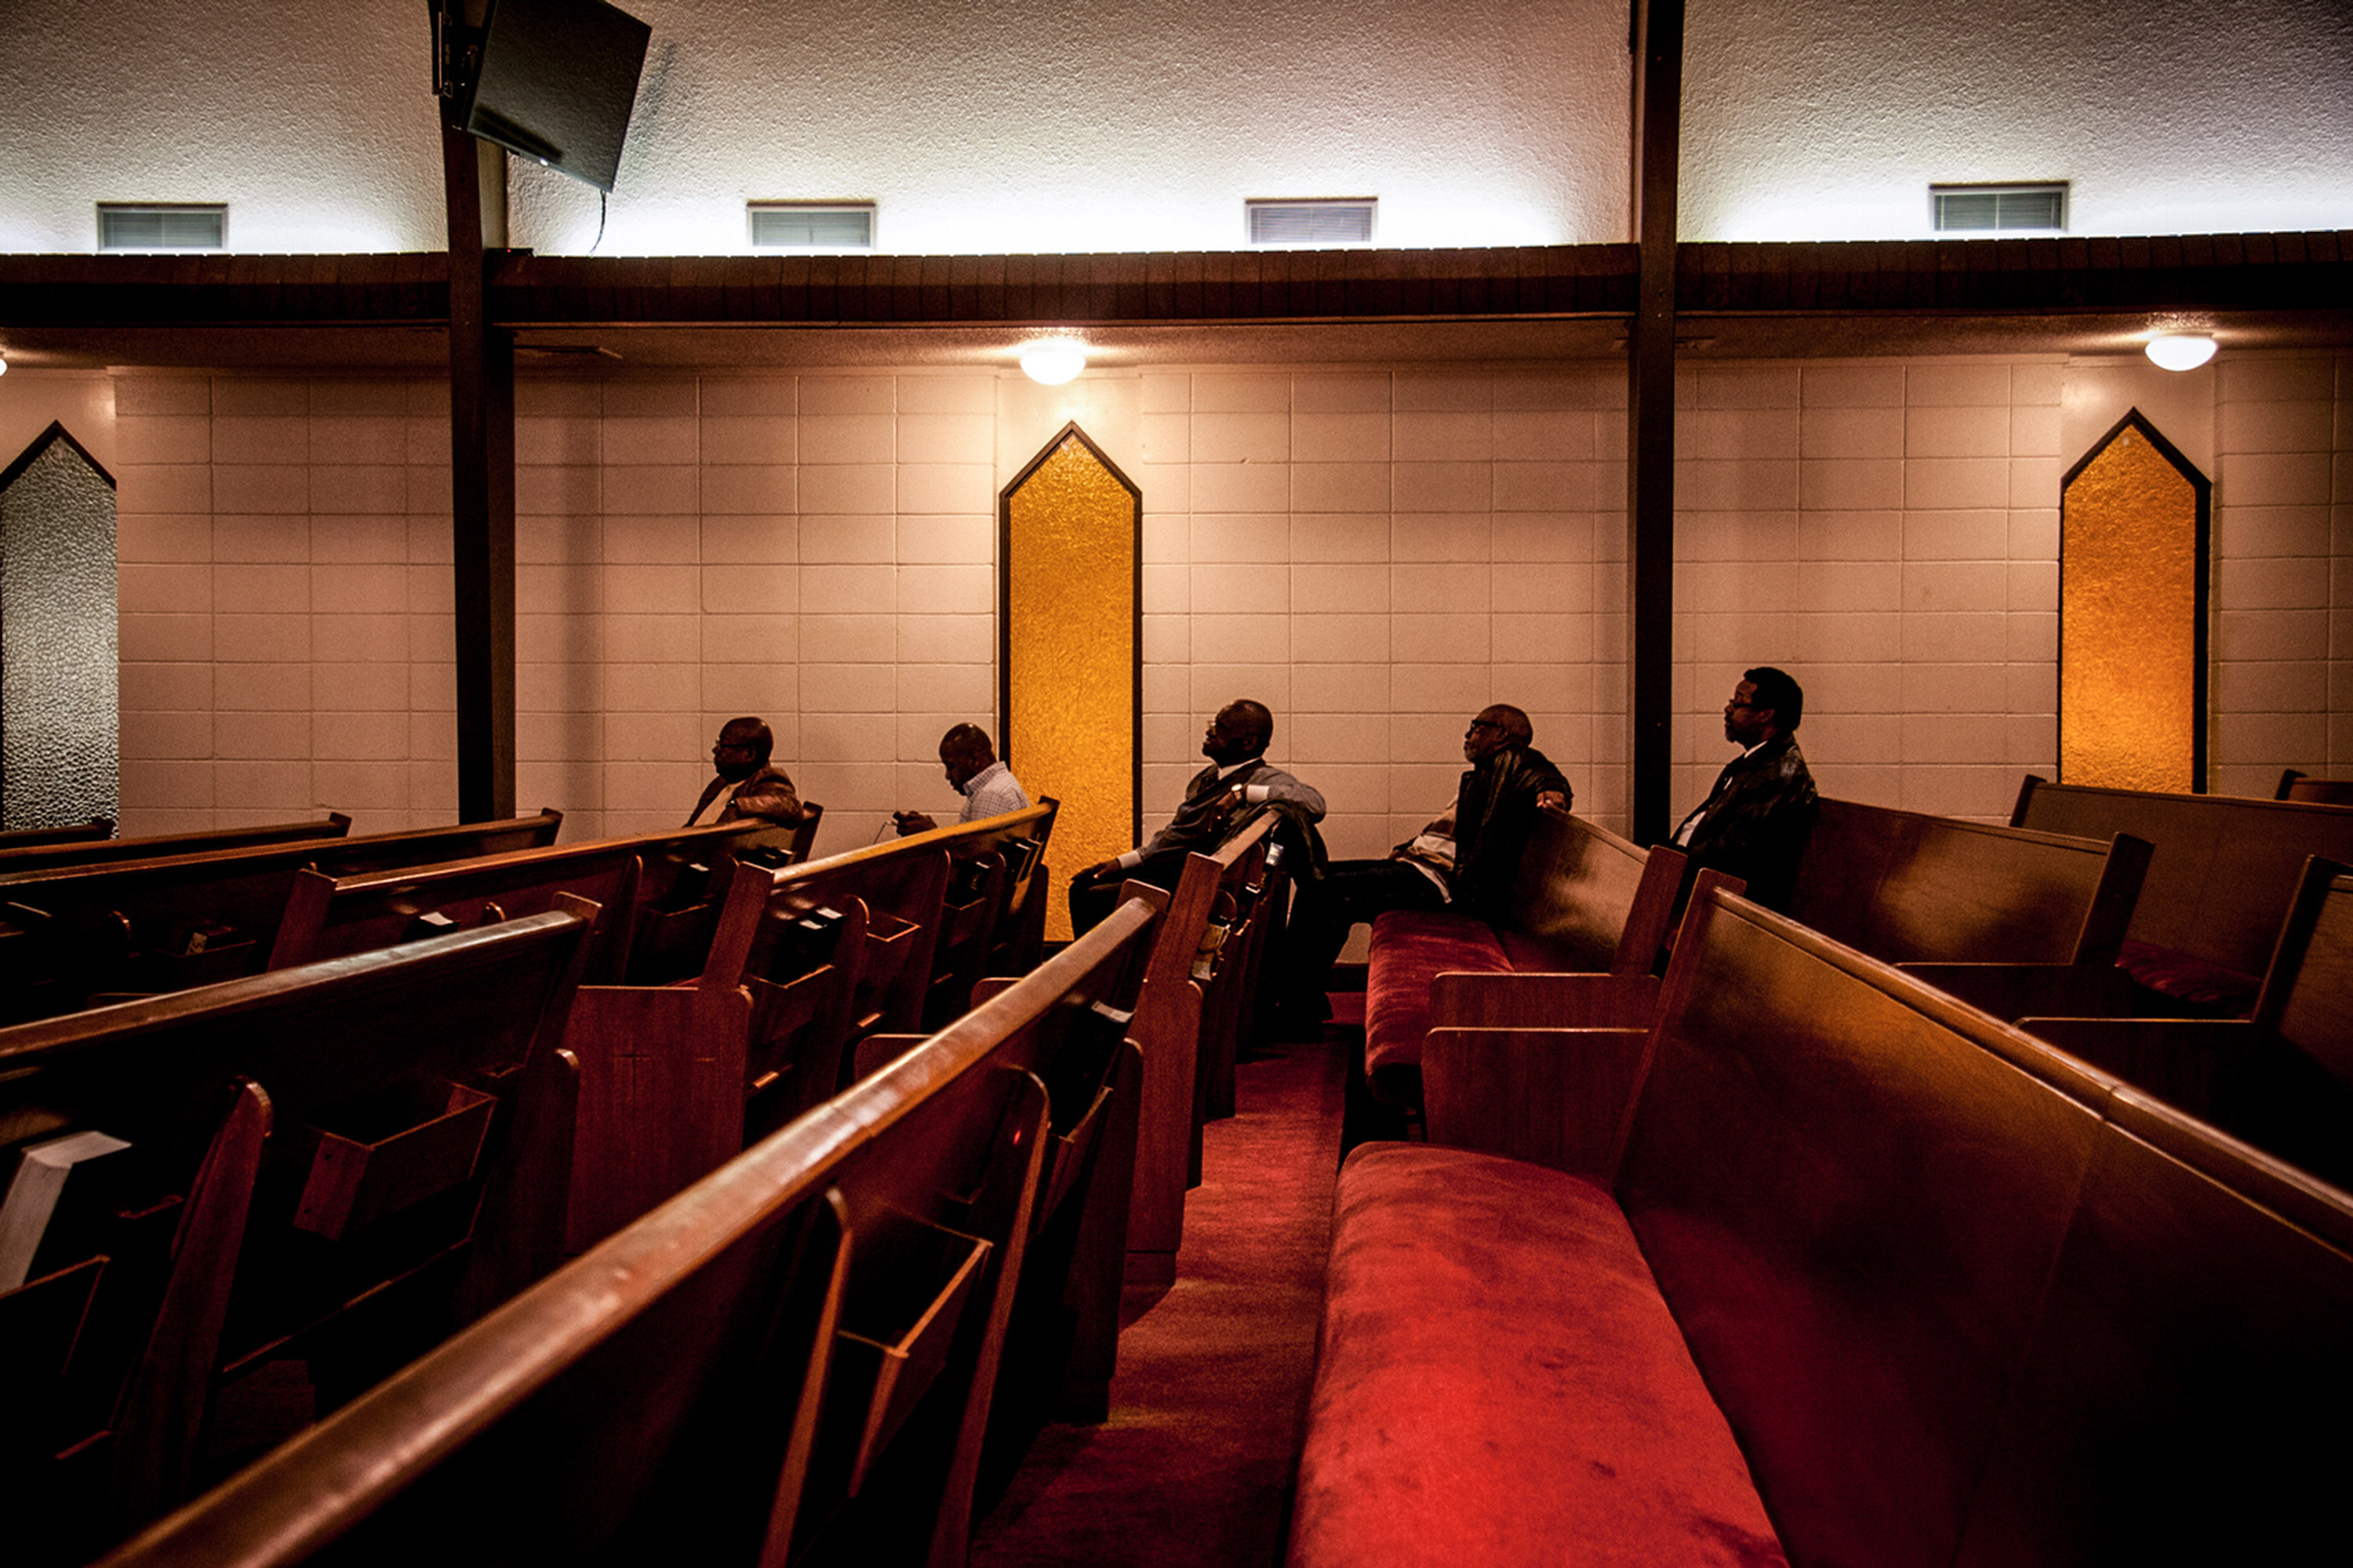 Five men sit listening to their family and friends sing in the 12th District Mass Choir at the Bethel A.M.E. Church, in Little Rock, Arkansas, 2015.